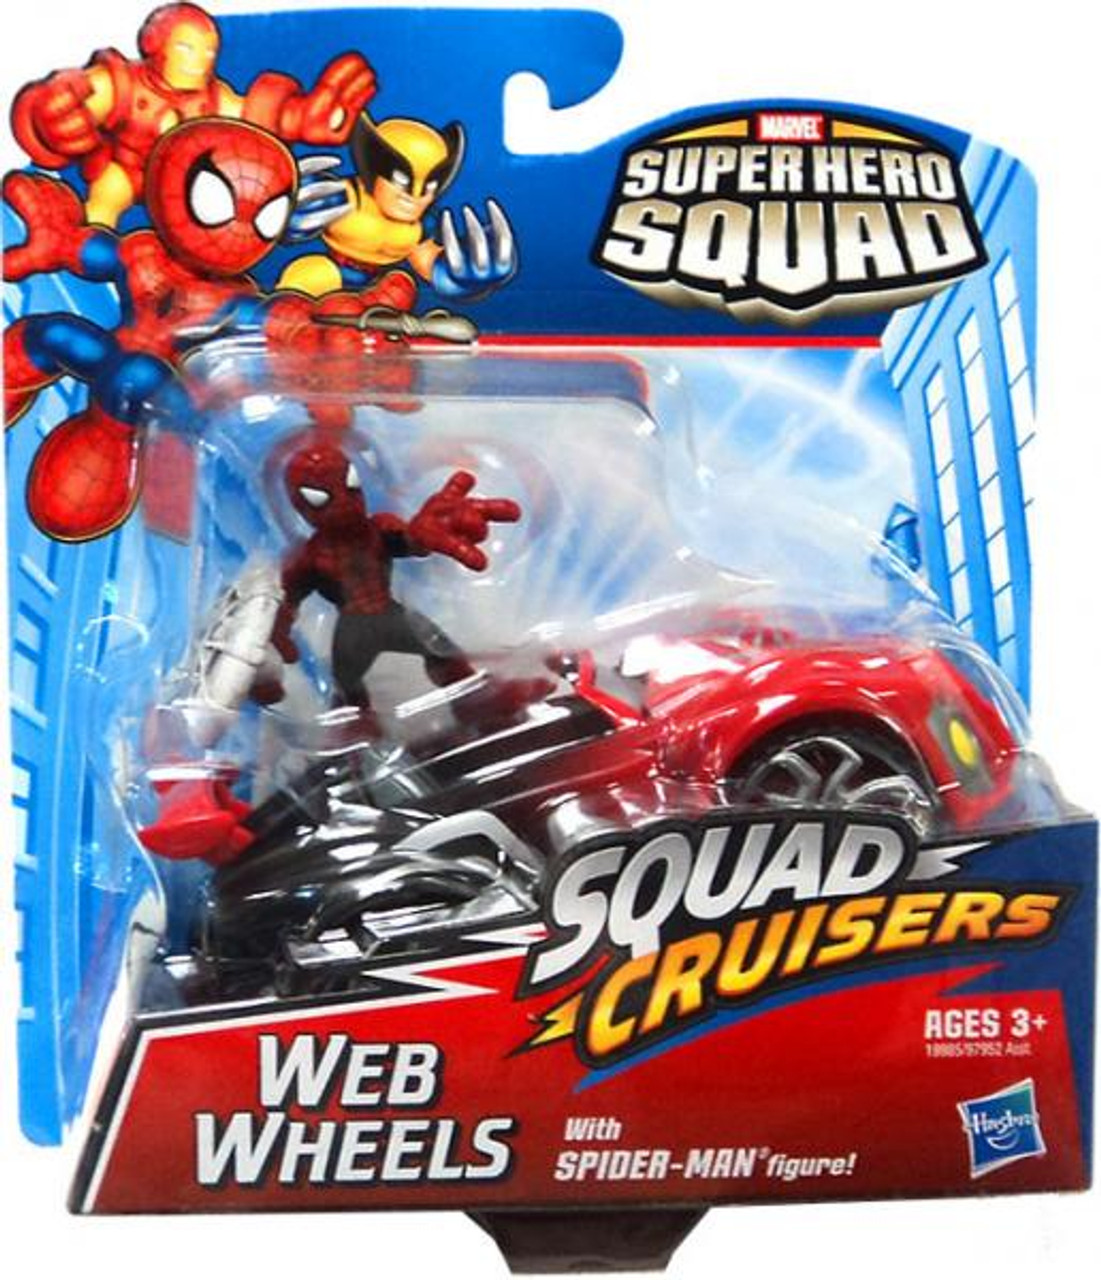 Marvel Superhero Squad Cruisers Web Wheels with Spider-Man Action Figure Vehicle